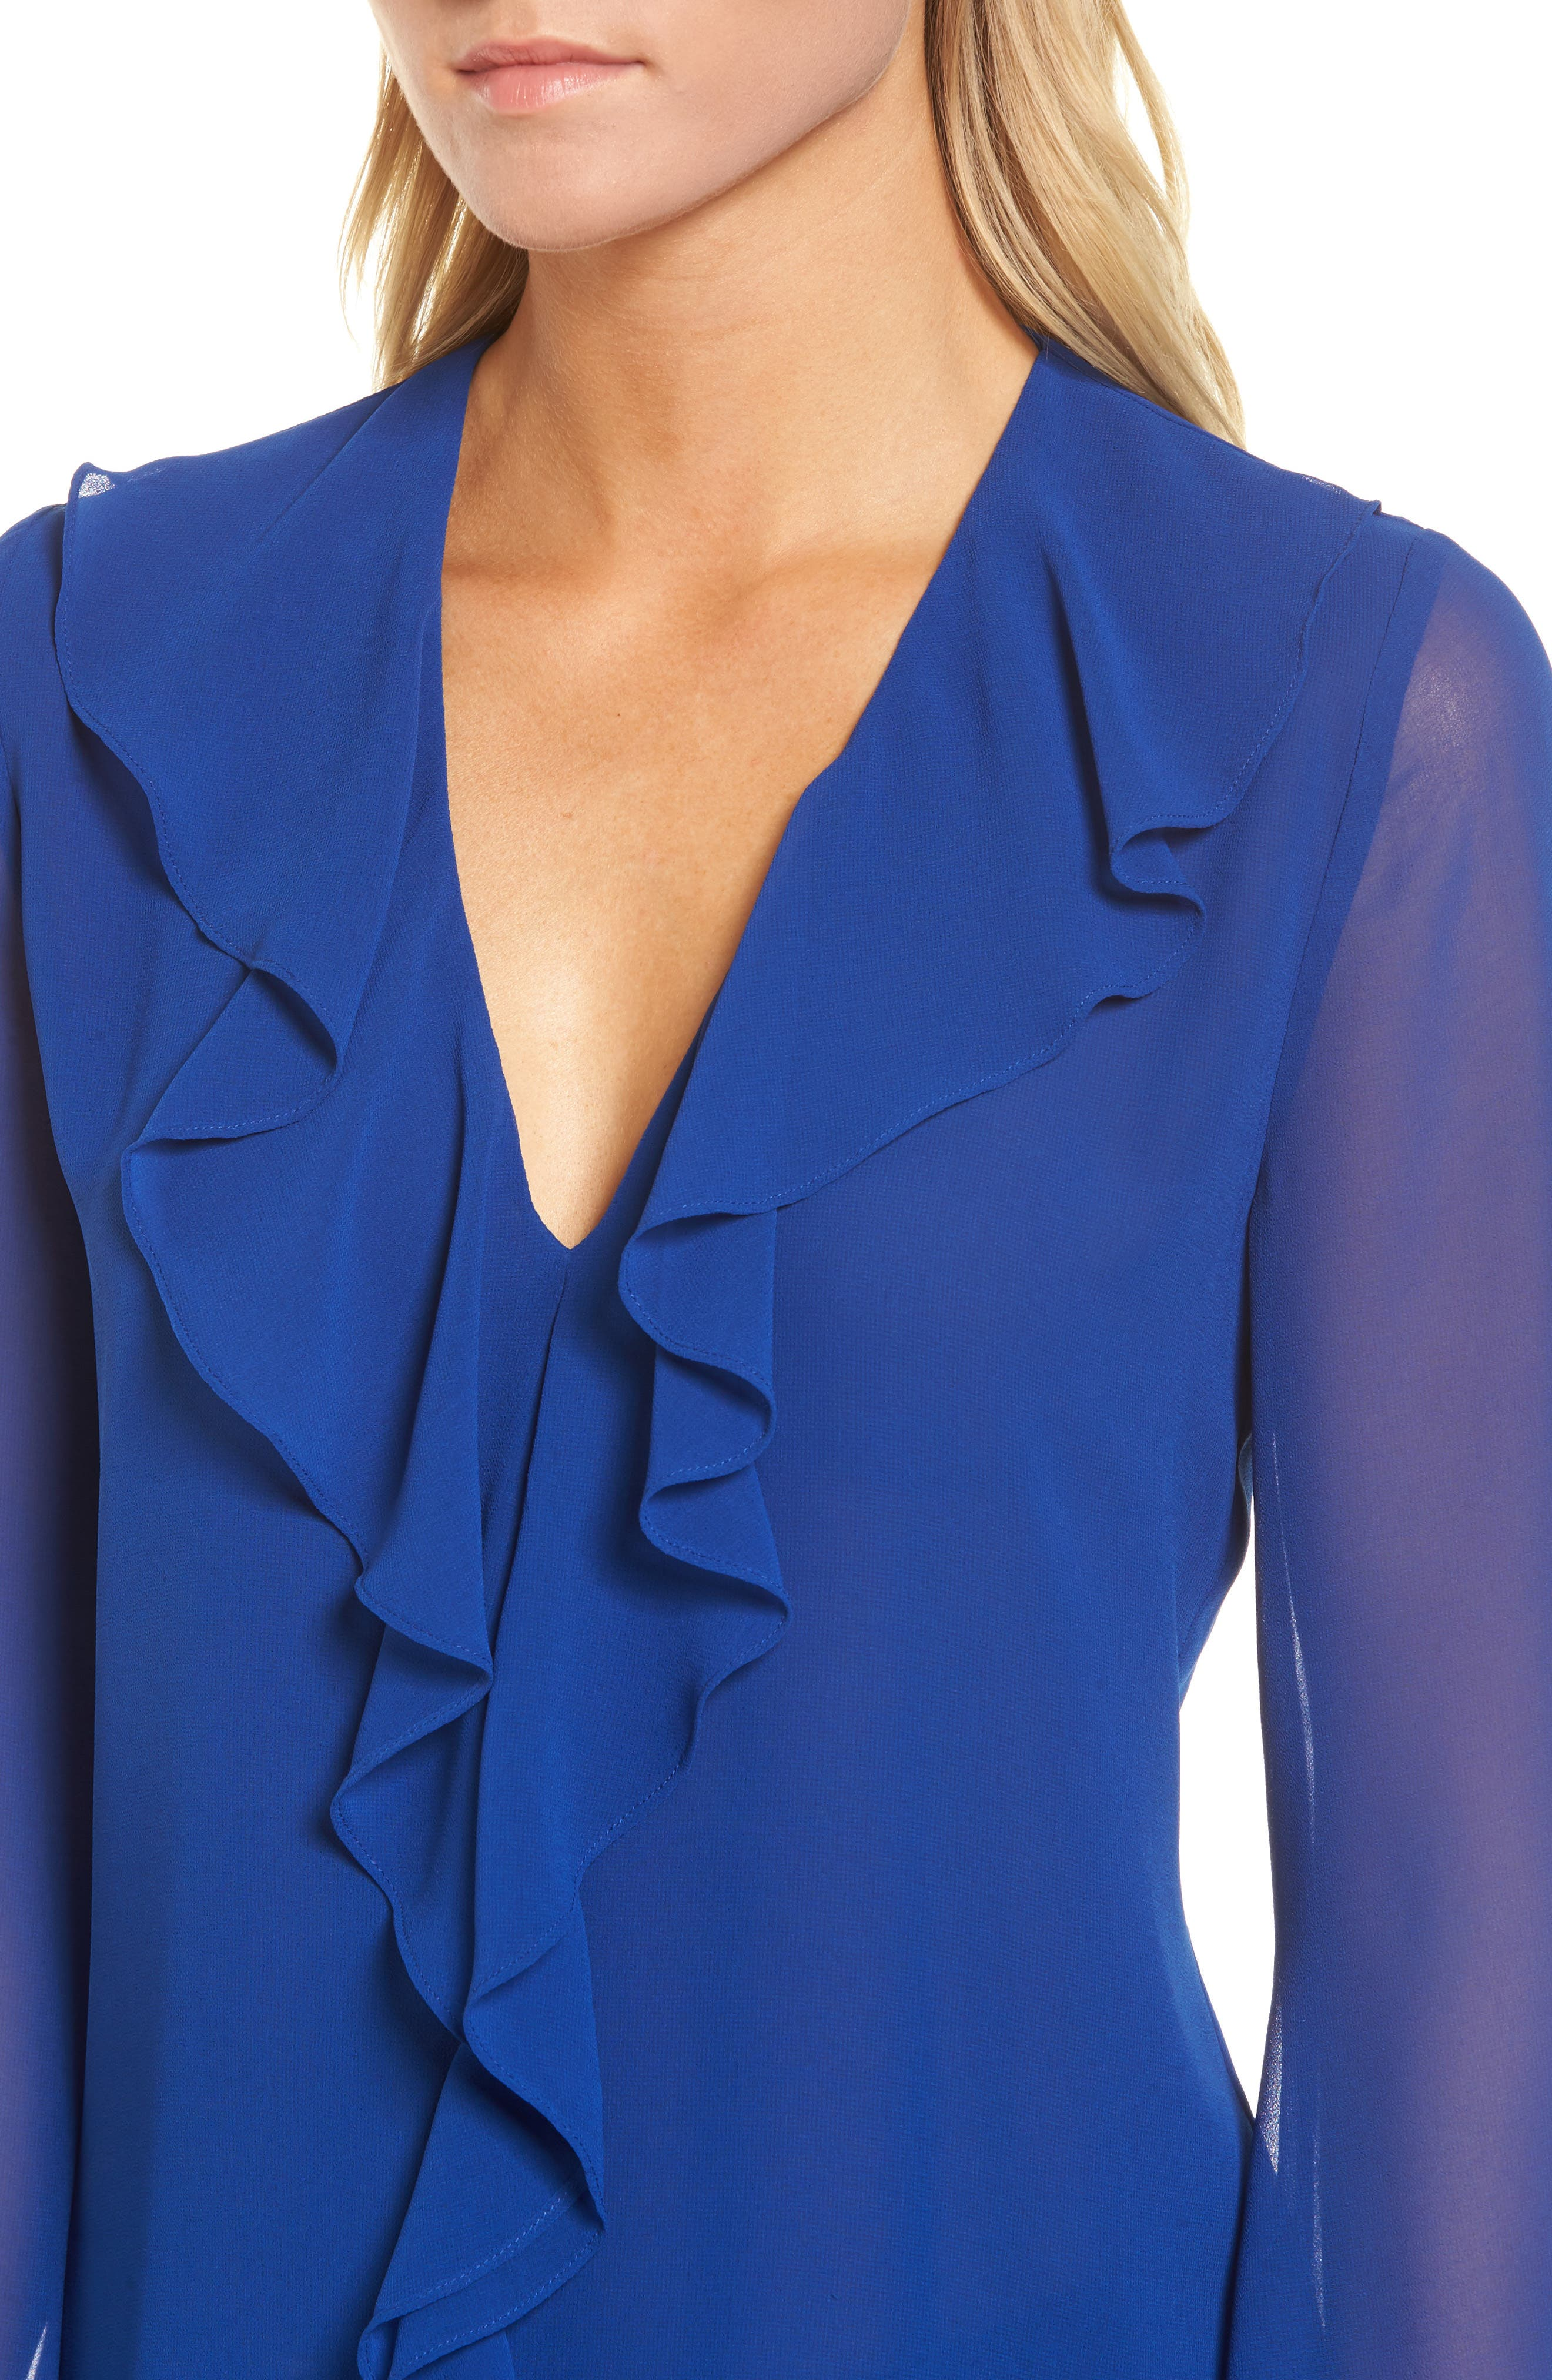 Ruffle V-Neck Blouse,                             Alternate thumbnail 4, color,                             Blue Mazarine